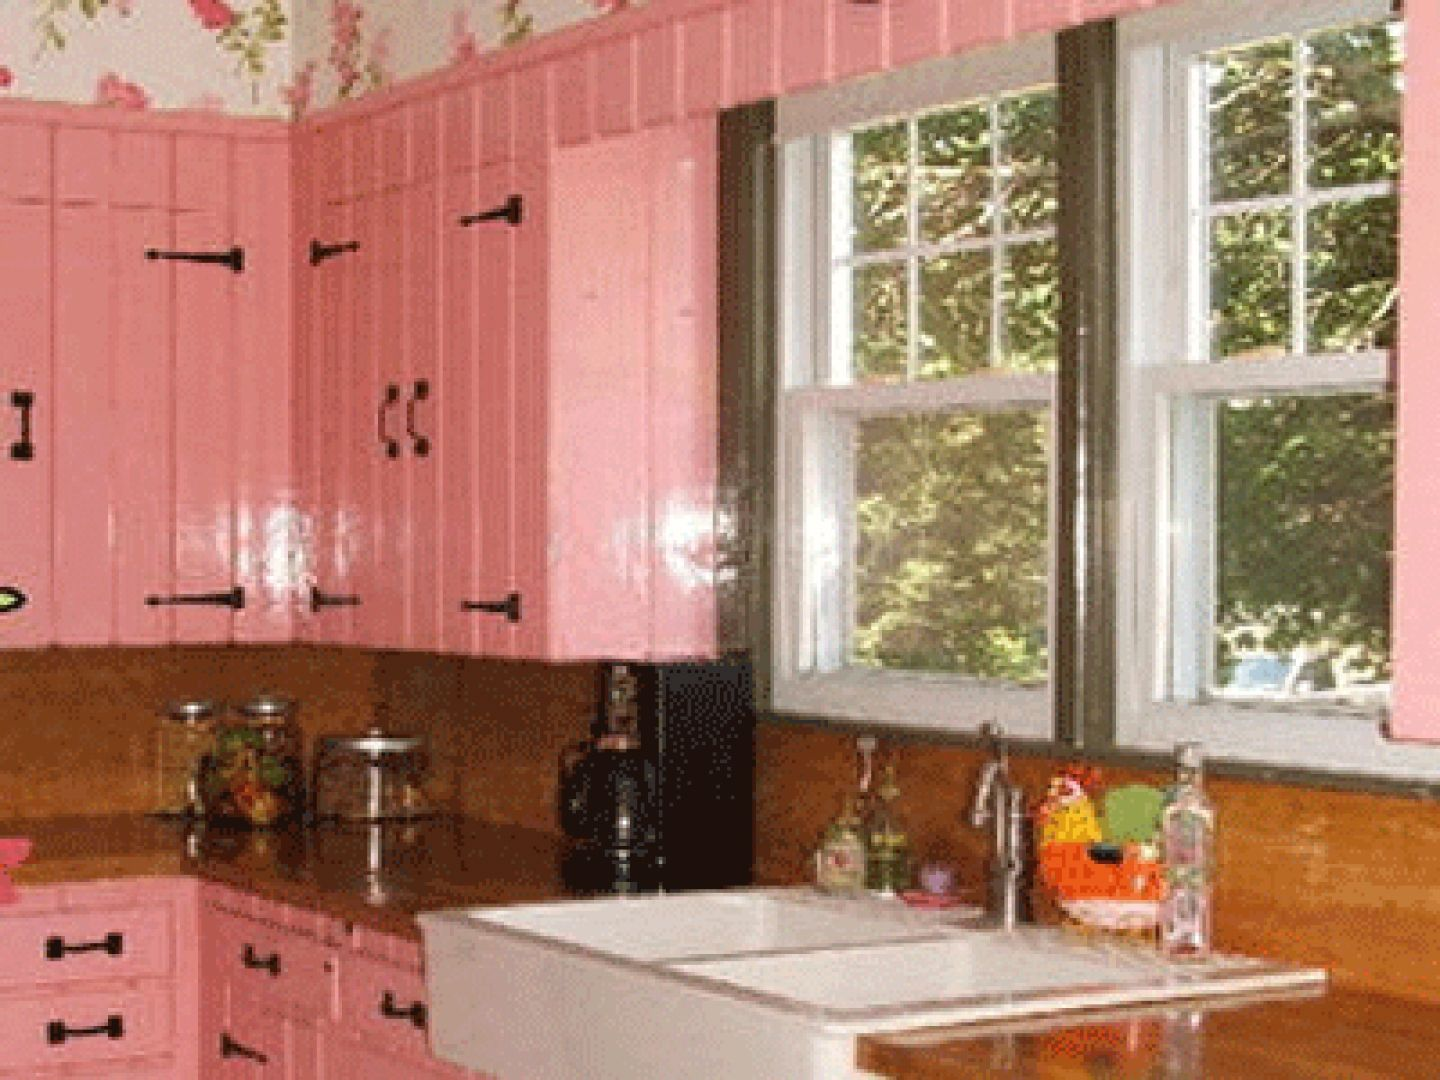 Unique kitchen cabinet colors - Image Result For Different Wall Colors With Oak Cabinets Kitchen